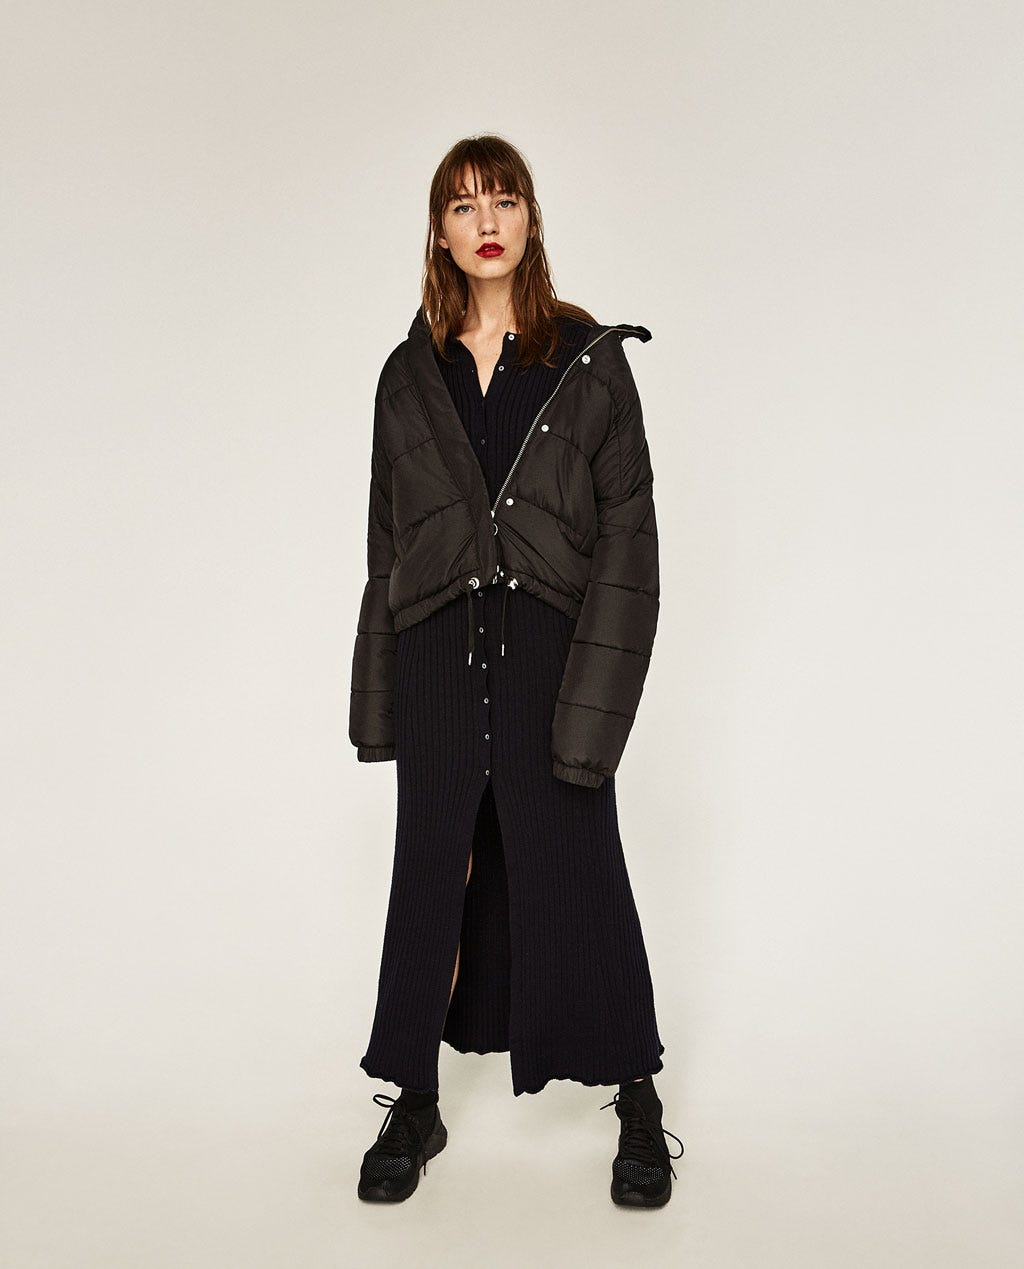 Zara Winter New Arrivals Cold Weather Trends